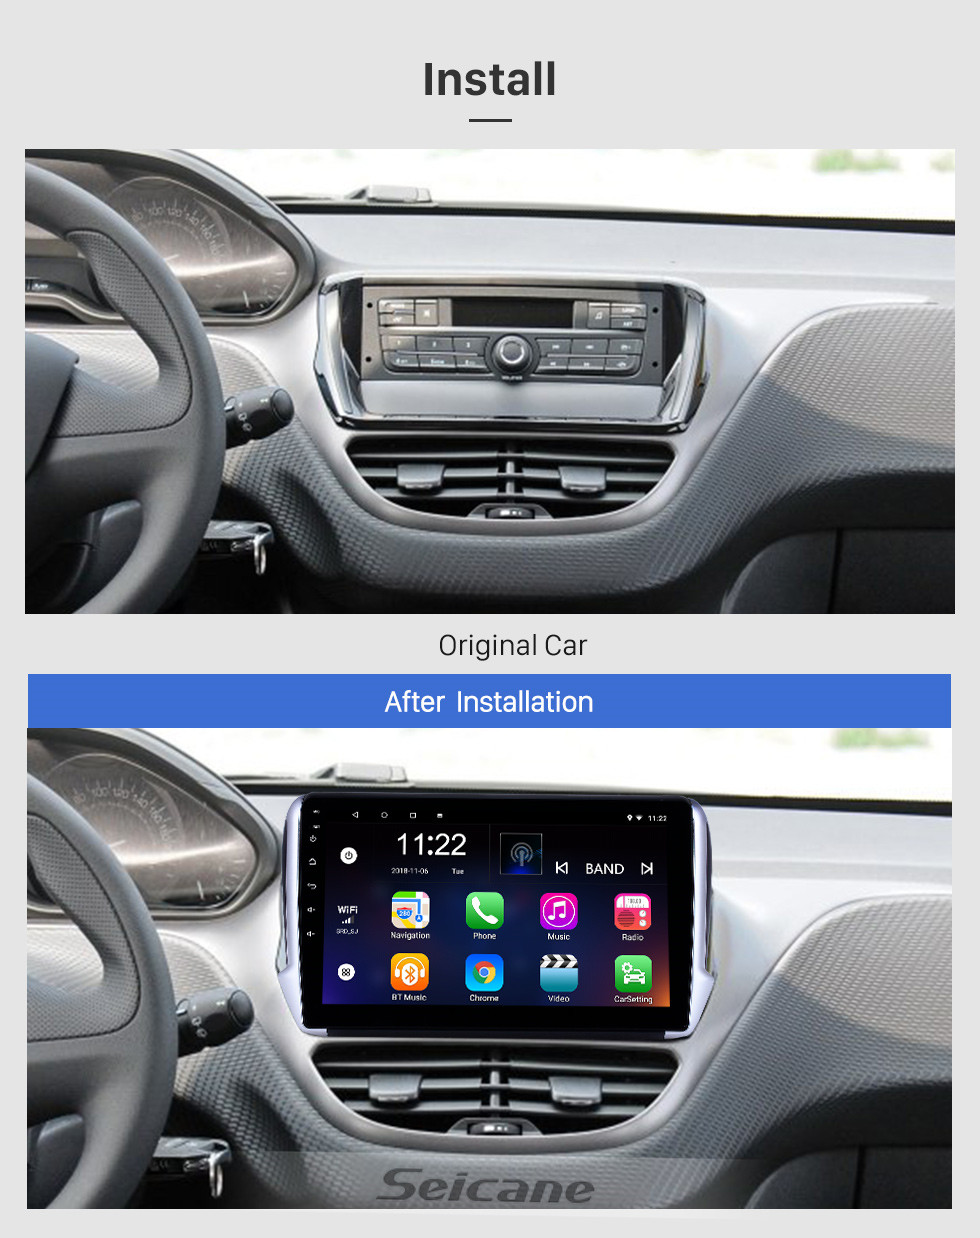 Seicane 10.1 inch Android 10.0 GPS Navigation Radio for 2014-2016 Peugeot 2008 with HD Touchscreen Bluetooth USB WIFI AUX support Carplay SWC TPMS